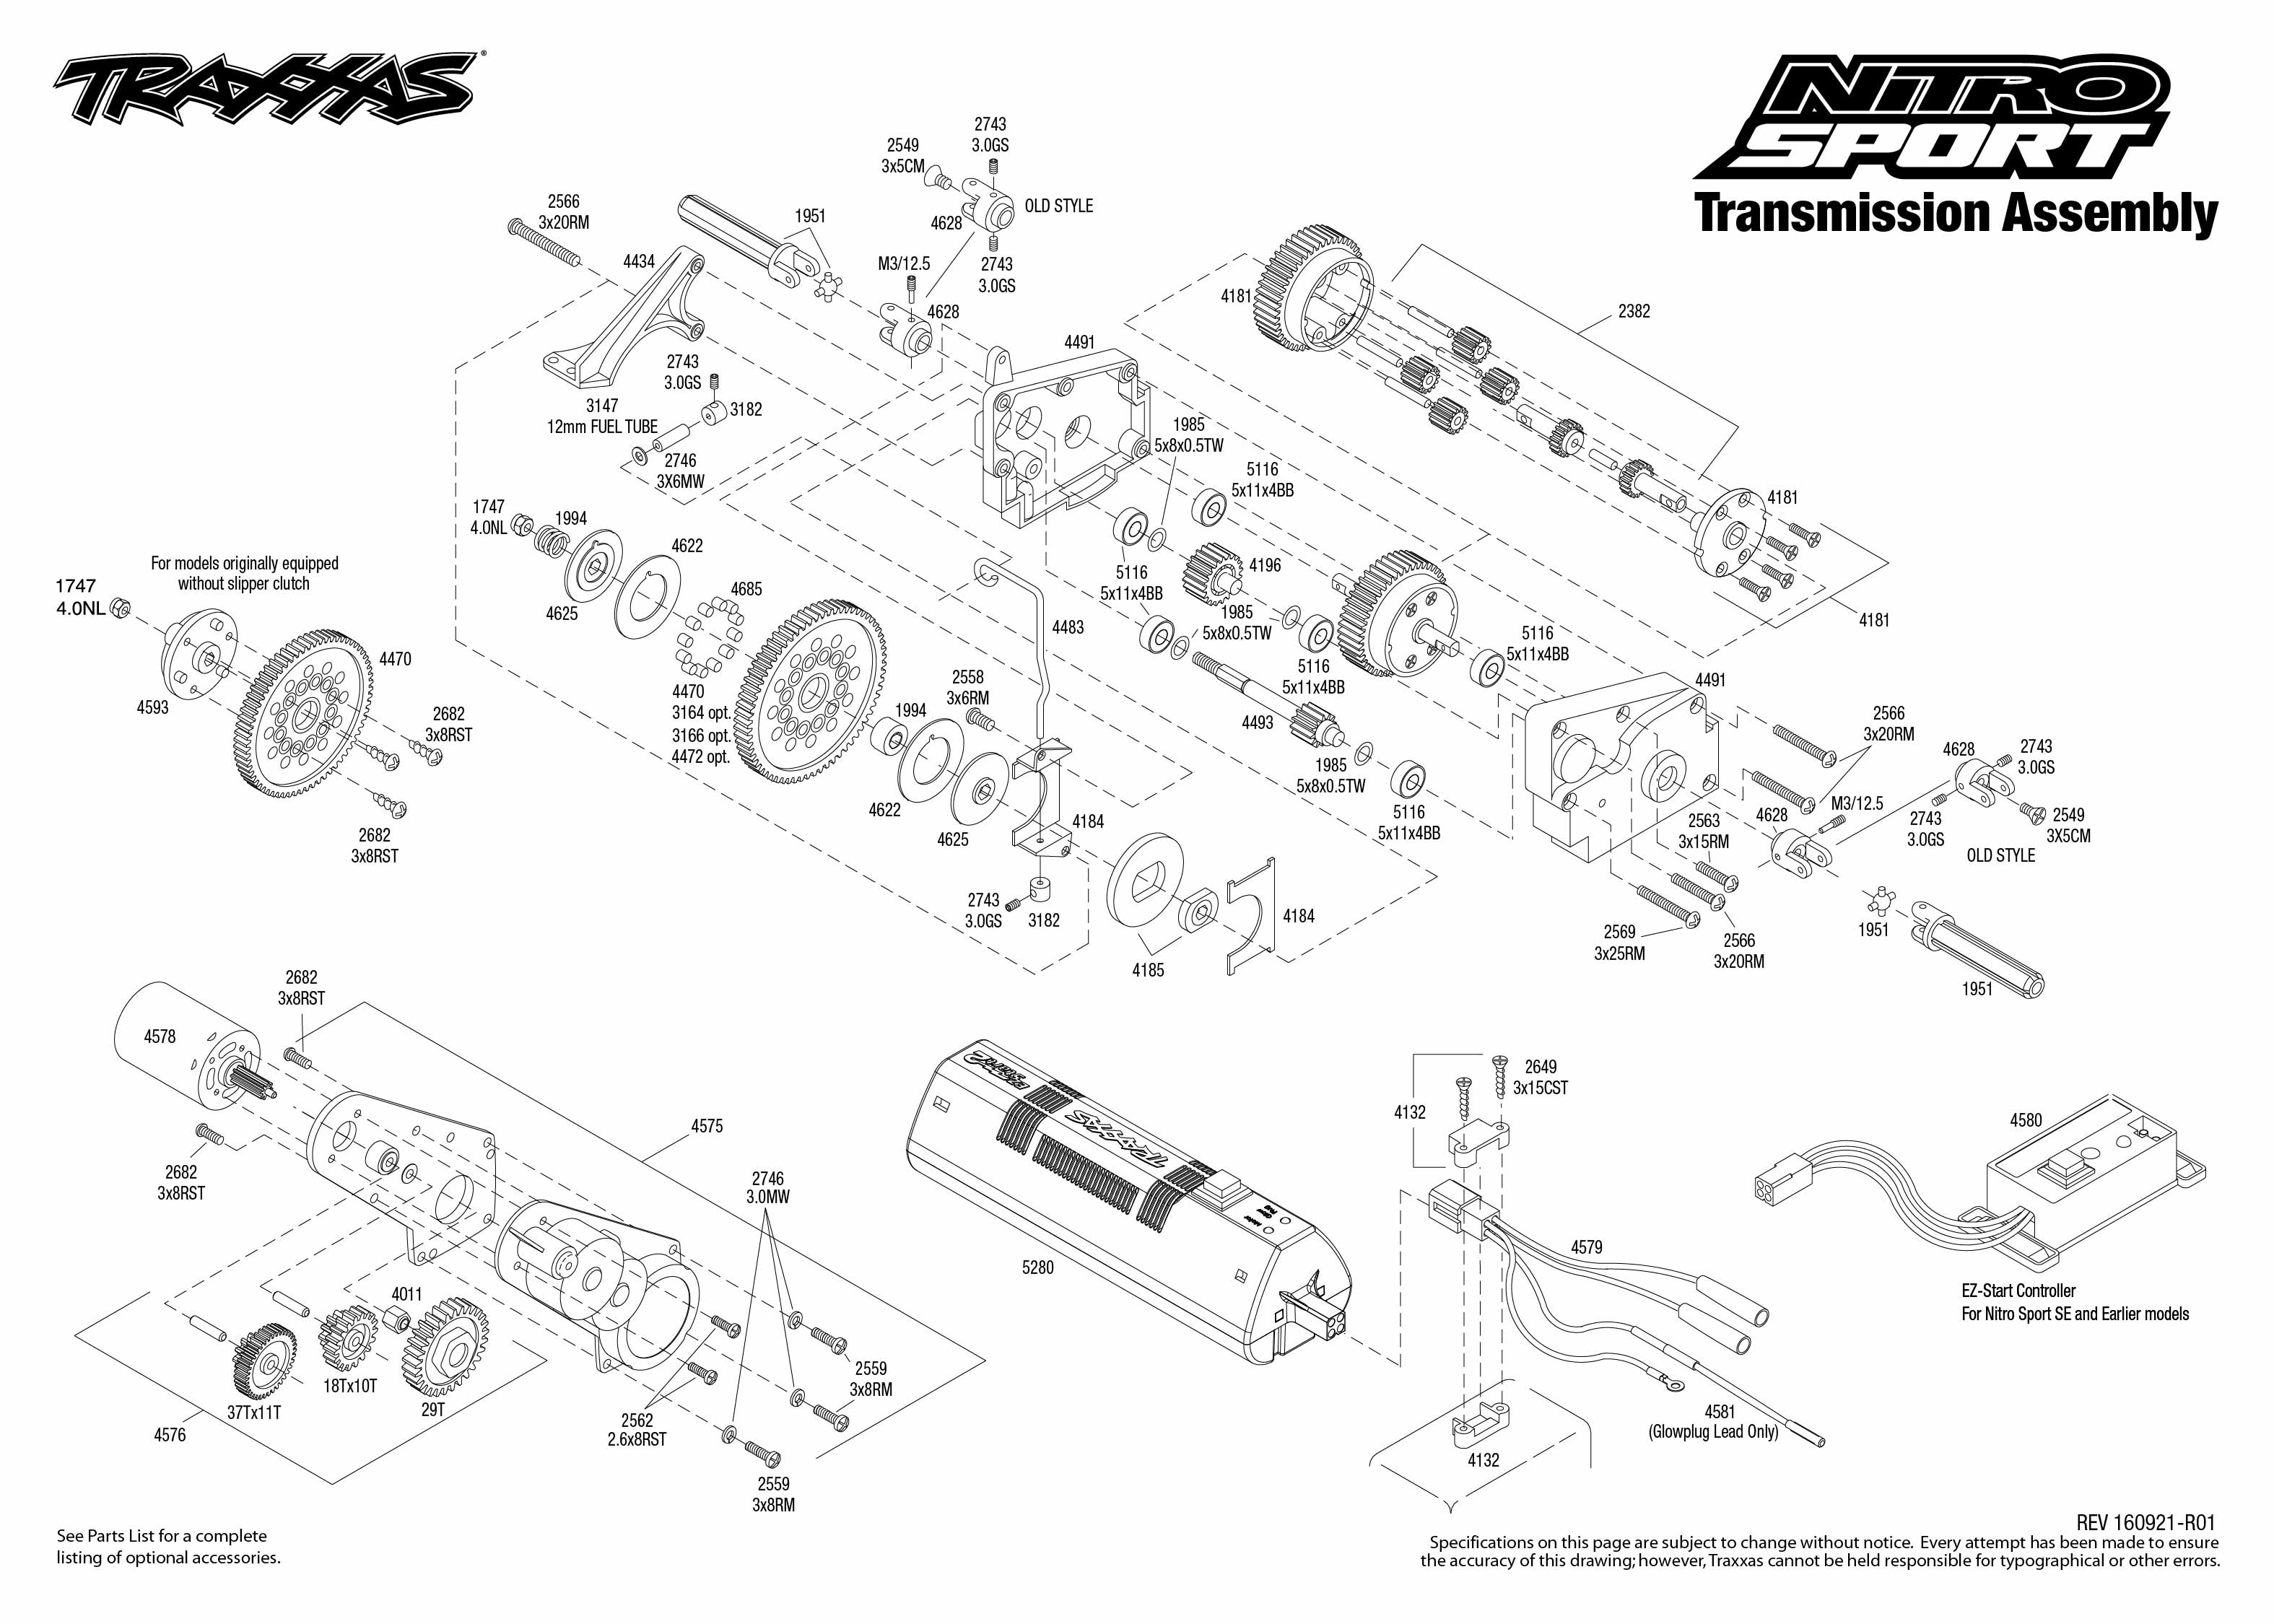 Nitro Sport (45104-1) Transmission Assembly Exploded View